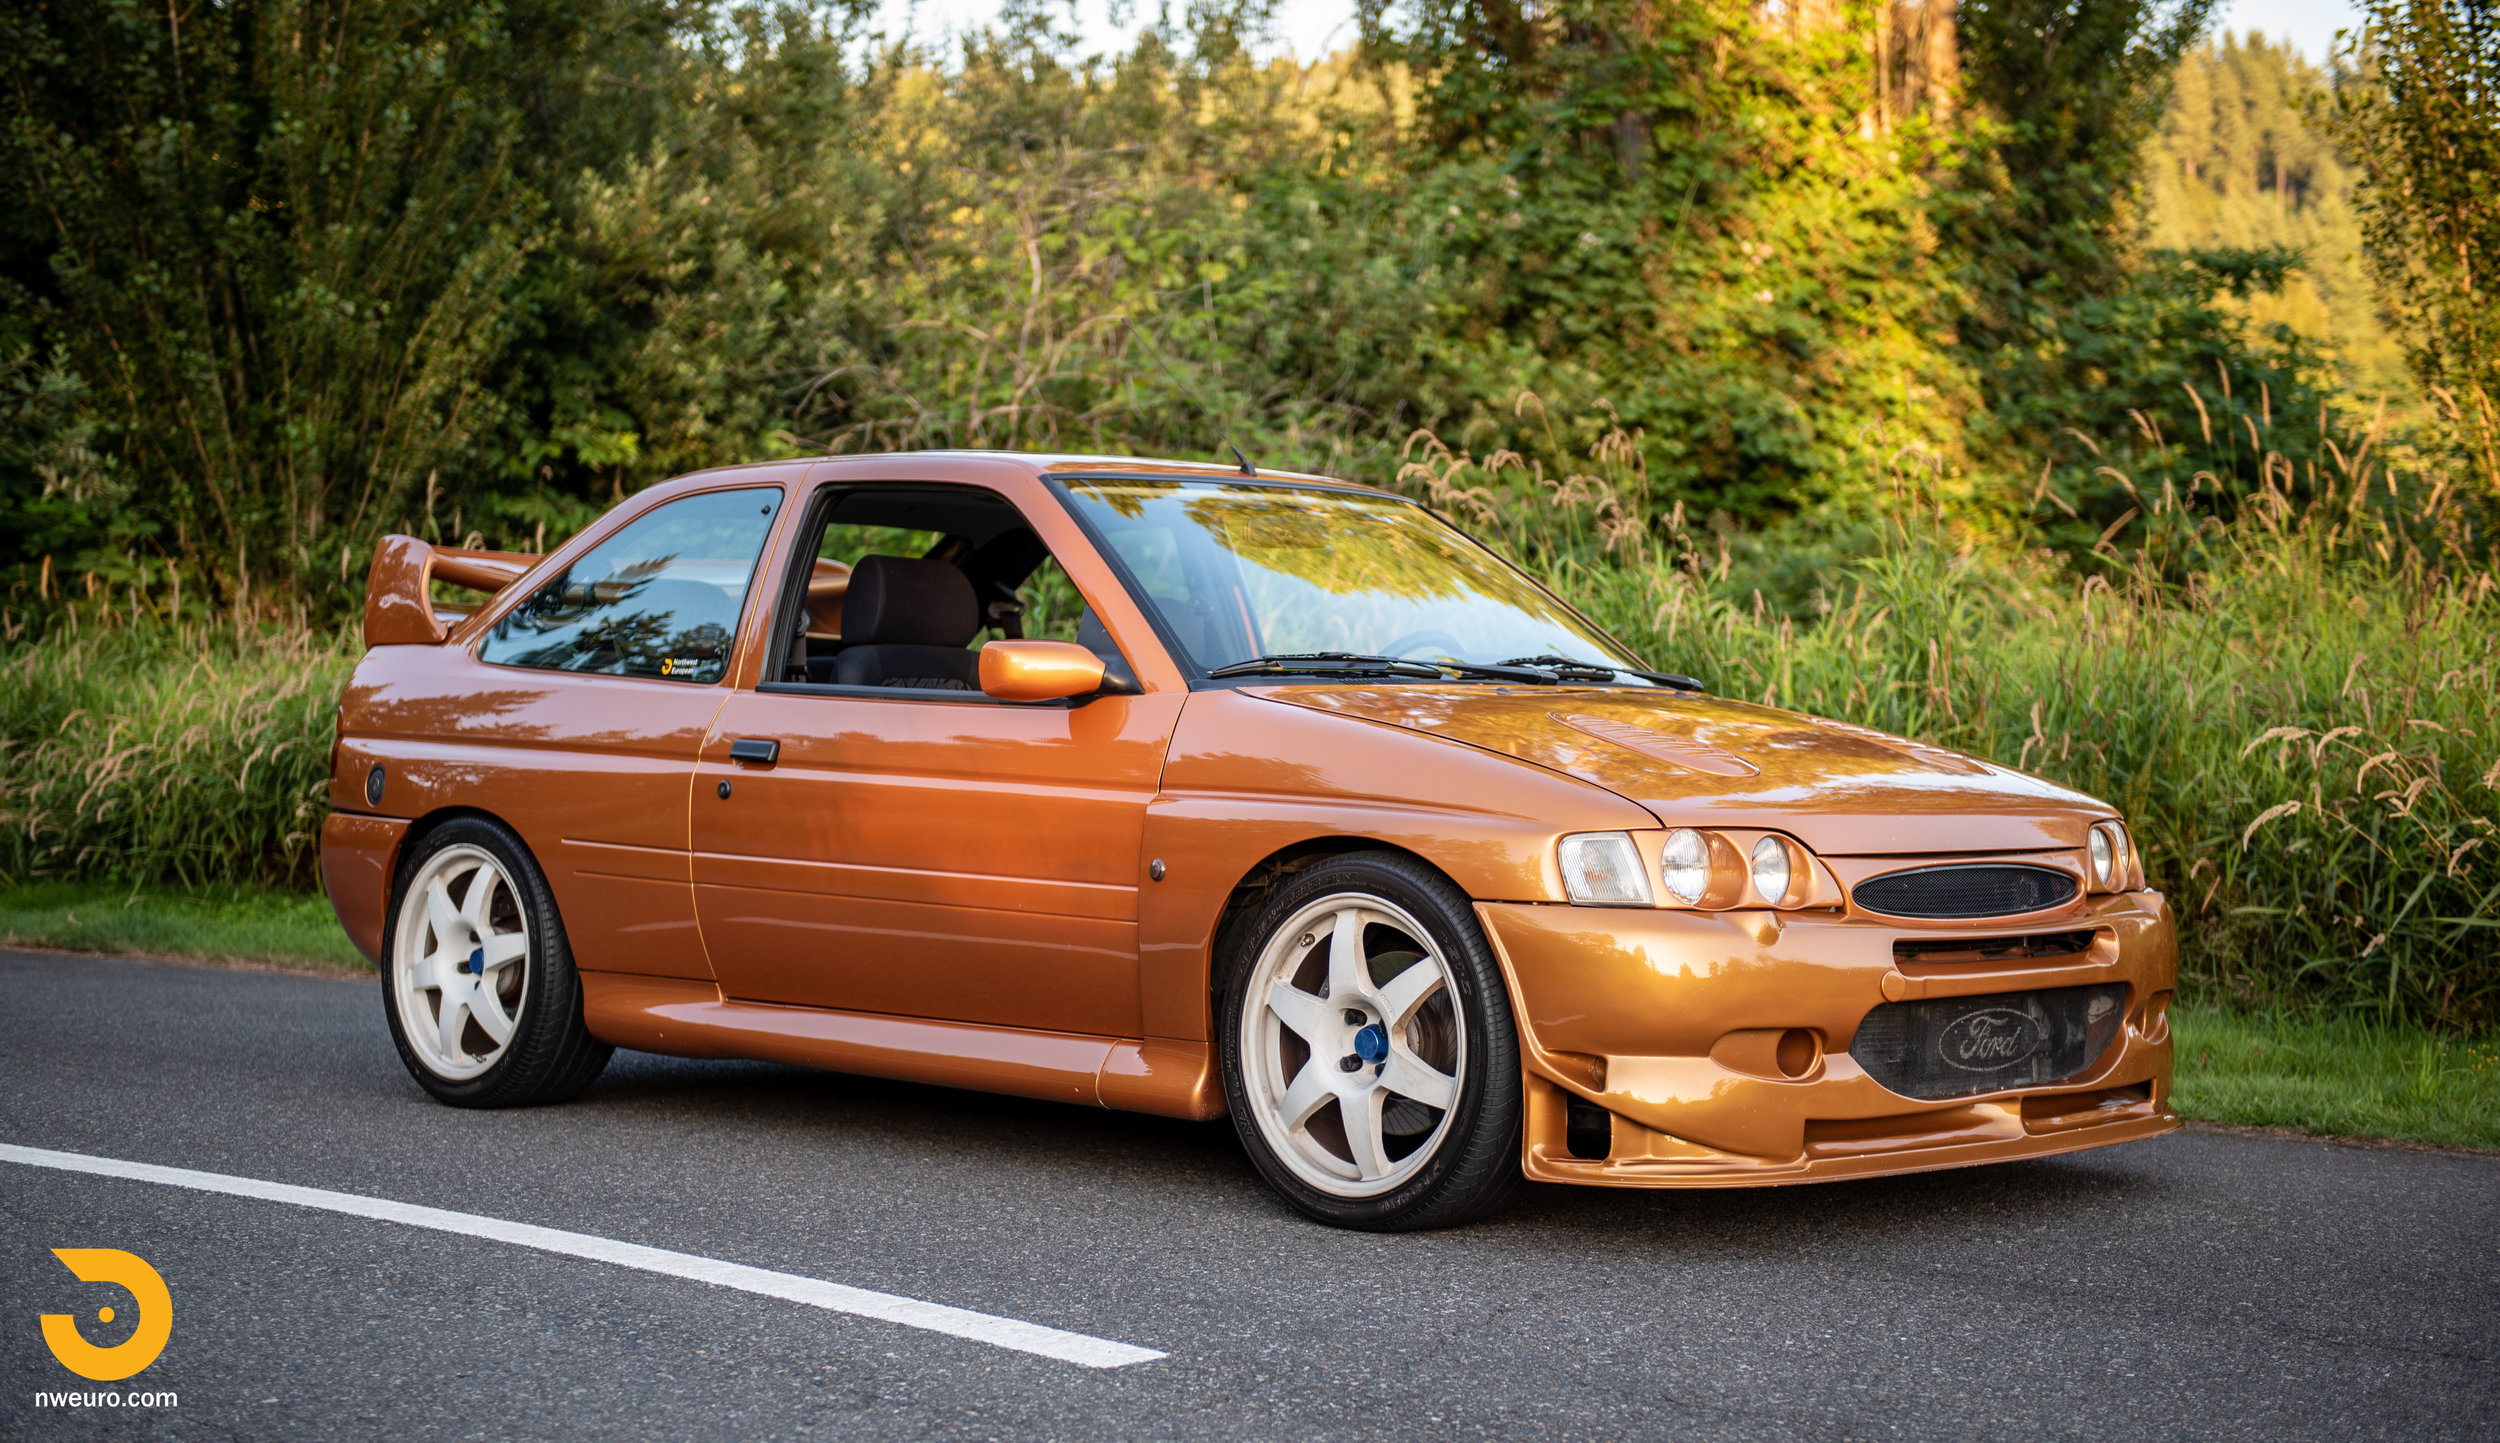 1995 Ford Escort Cosworth RS Gold-9.jpg